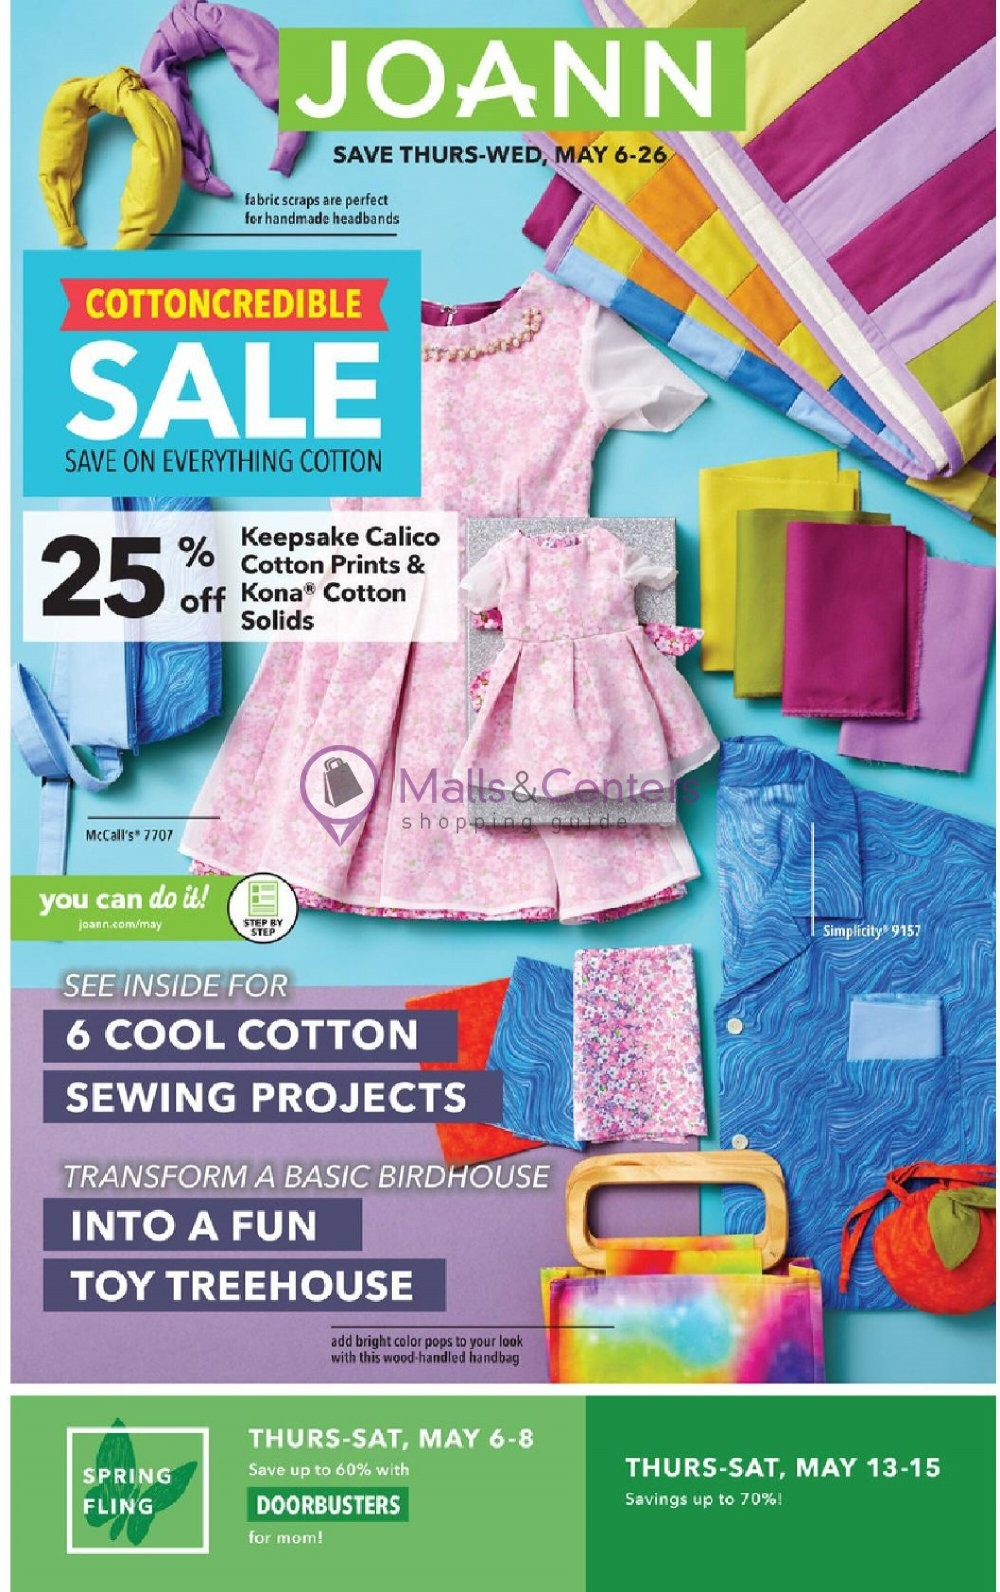 weekly ads Jo Ann Fabrics and Crafts - page 1 - mallscenters.com